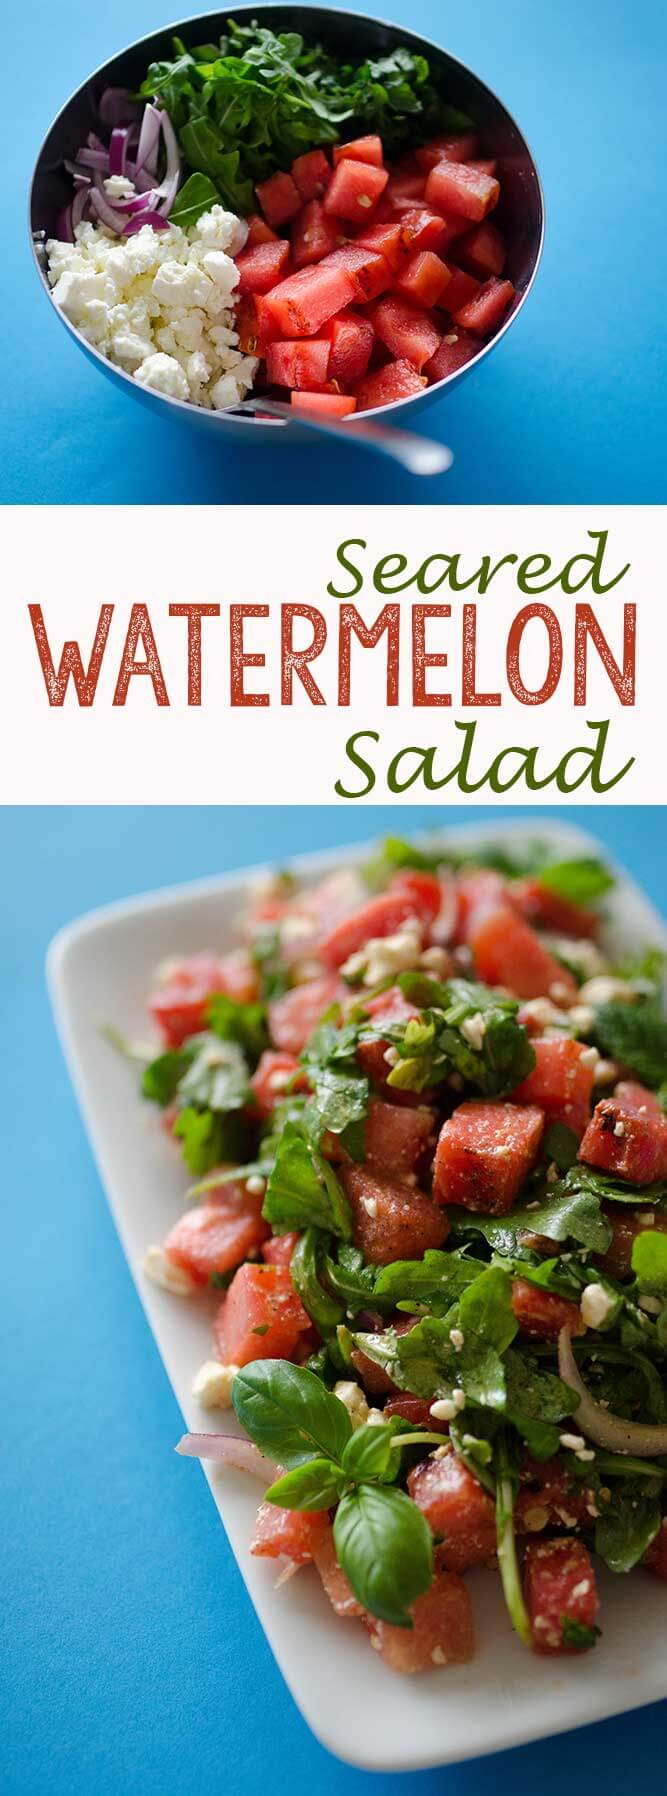 A seared watermelon salad is the perfect addition to your summer meal.